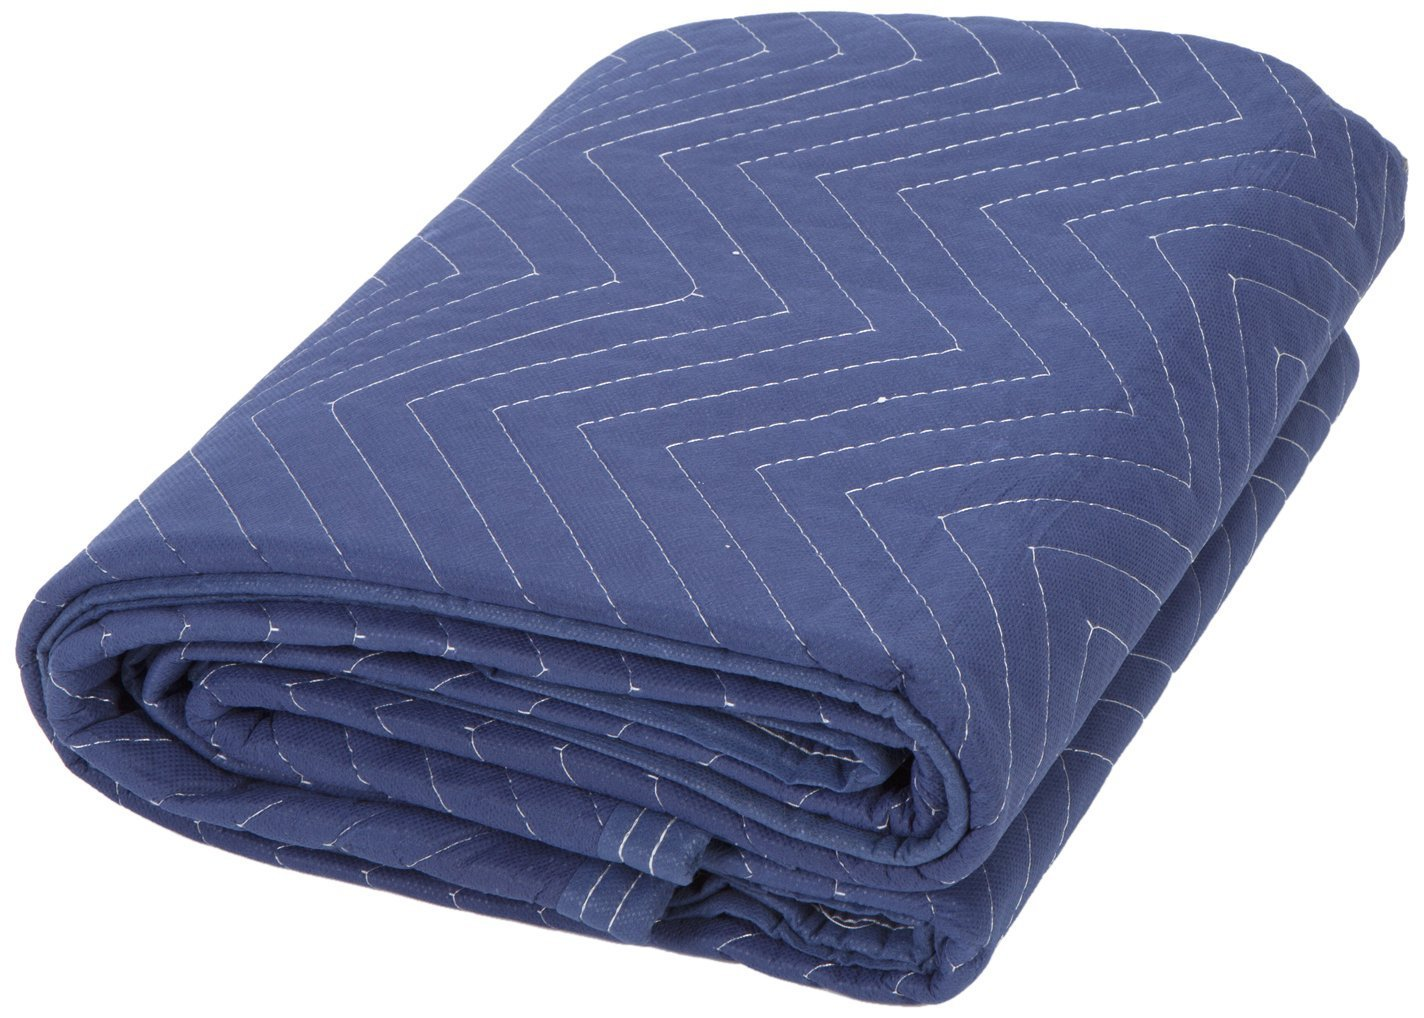 """Moving Blankets from Shoulder Dolly - 1 Blanket, 45"""" x 72"""" - Dual Sided Blanket, Heavy Duty, Thick, Durable, Supreme Quality - M1002"""